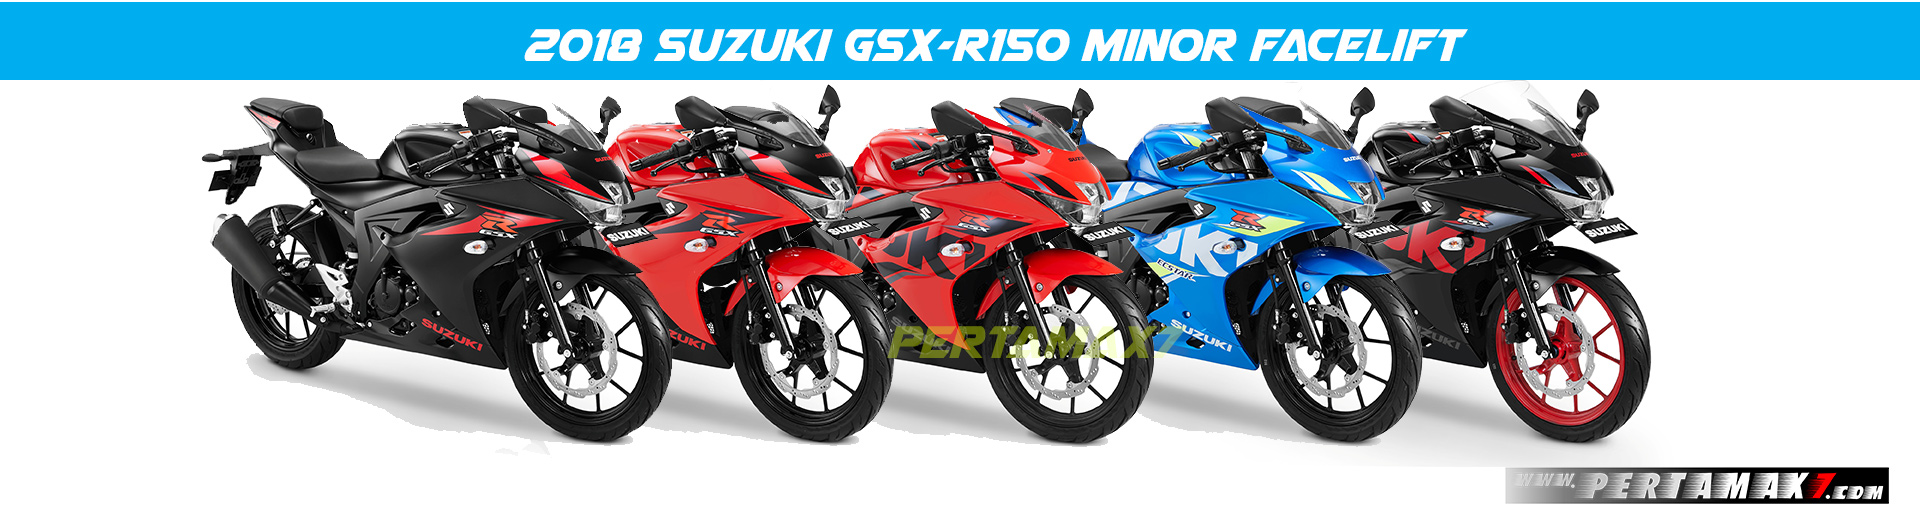 Minor Facelift Suzuki GSX-R150 Striping 2018